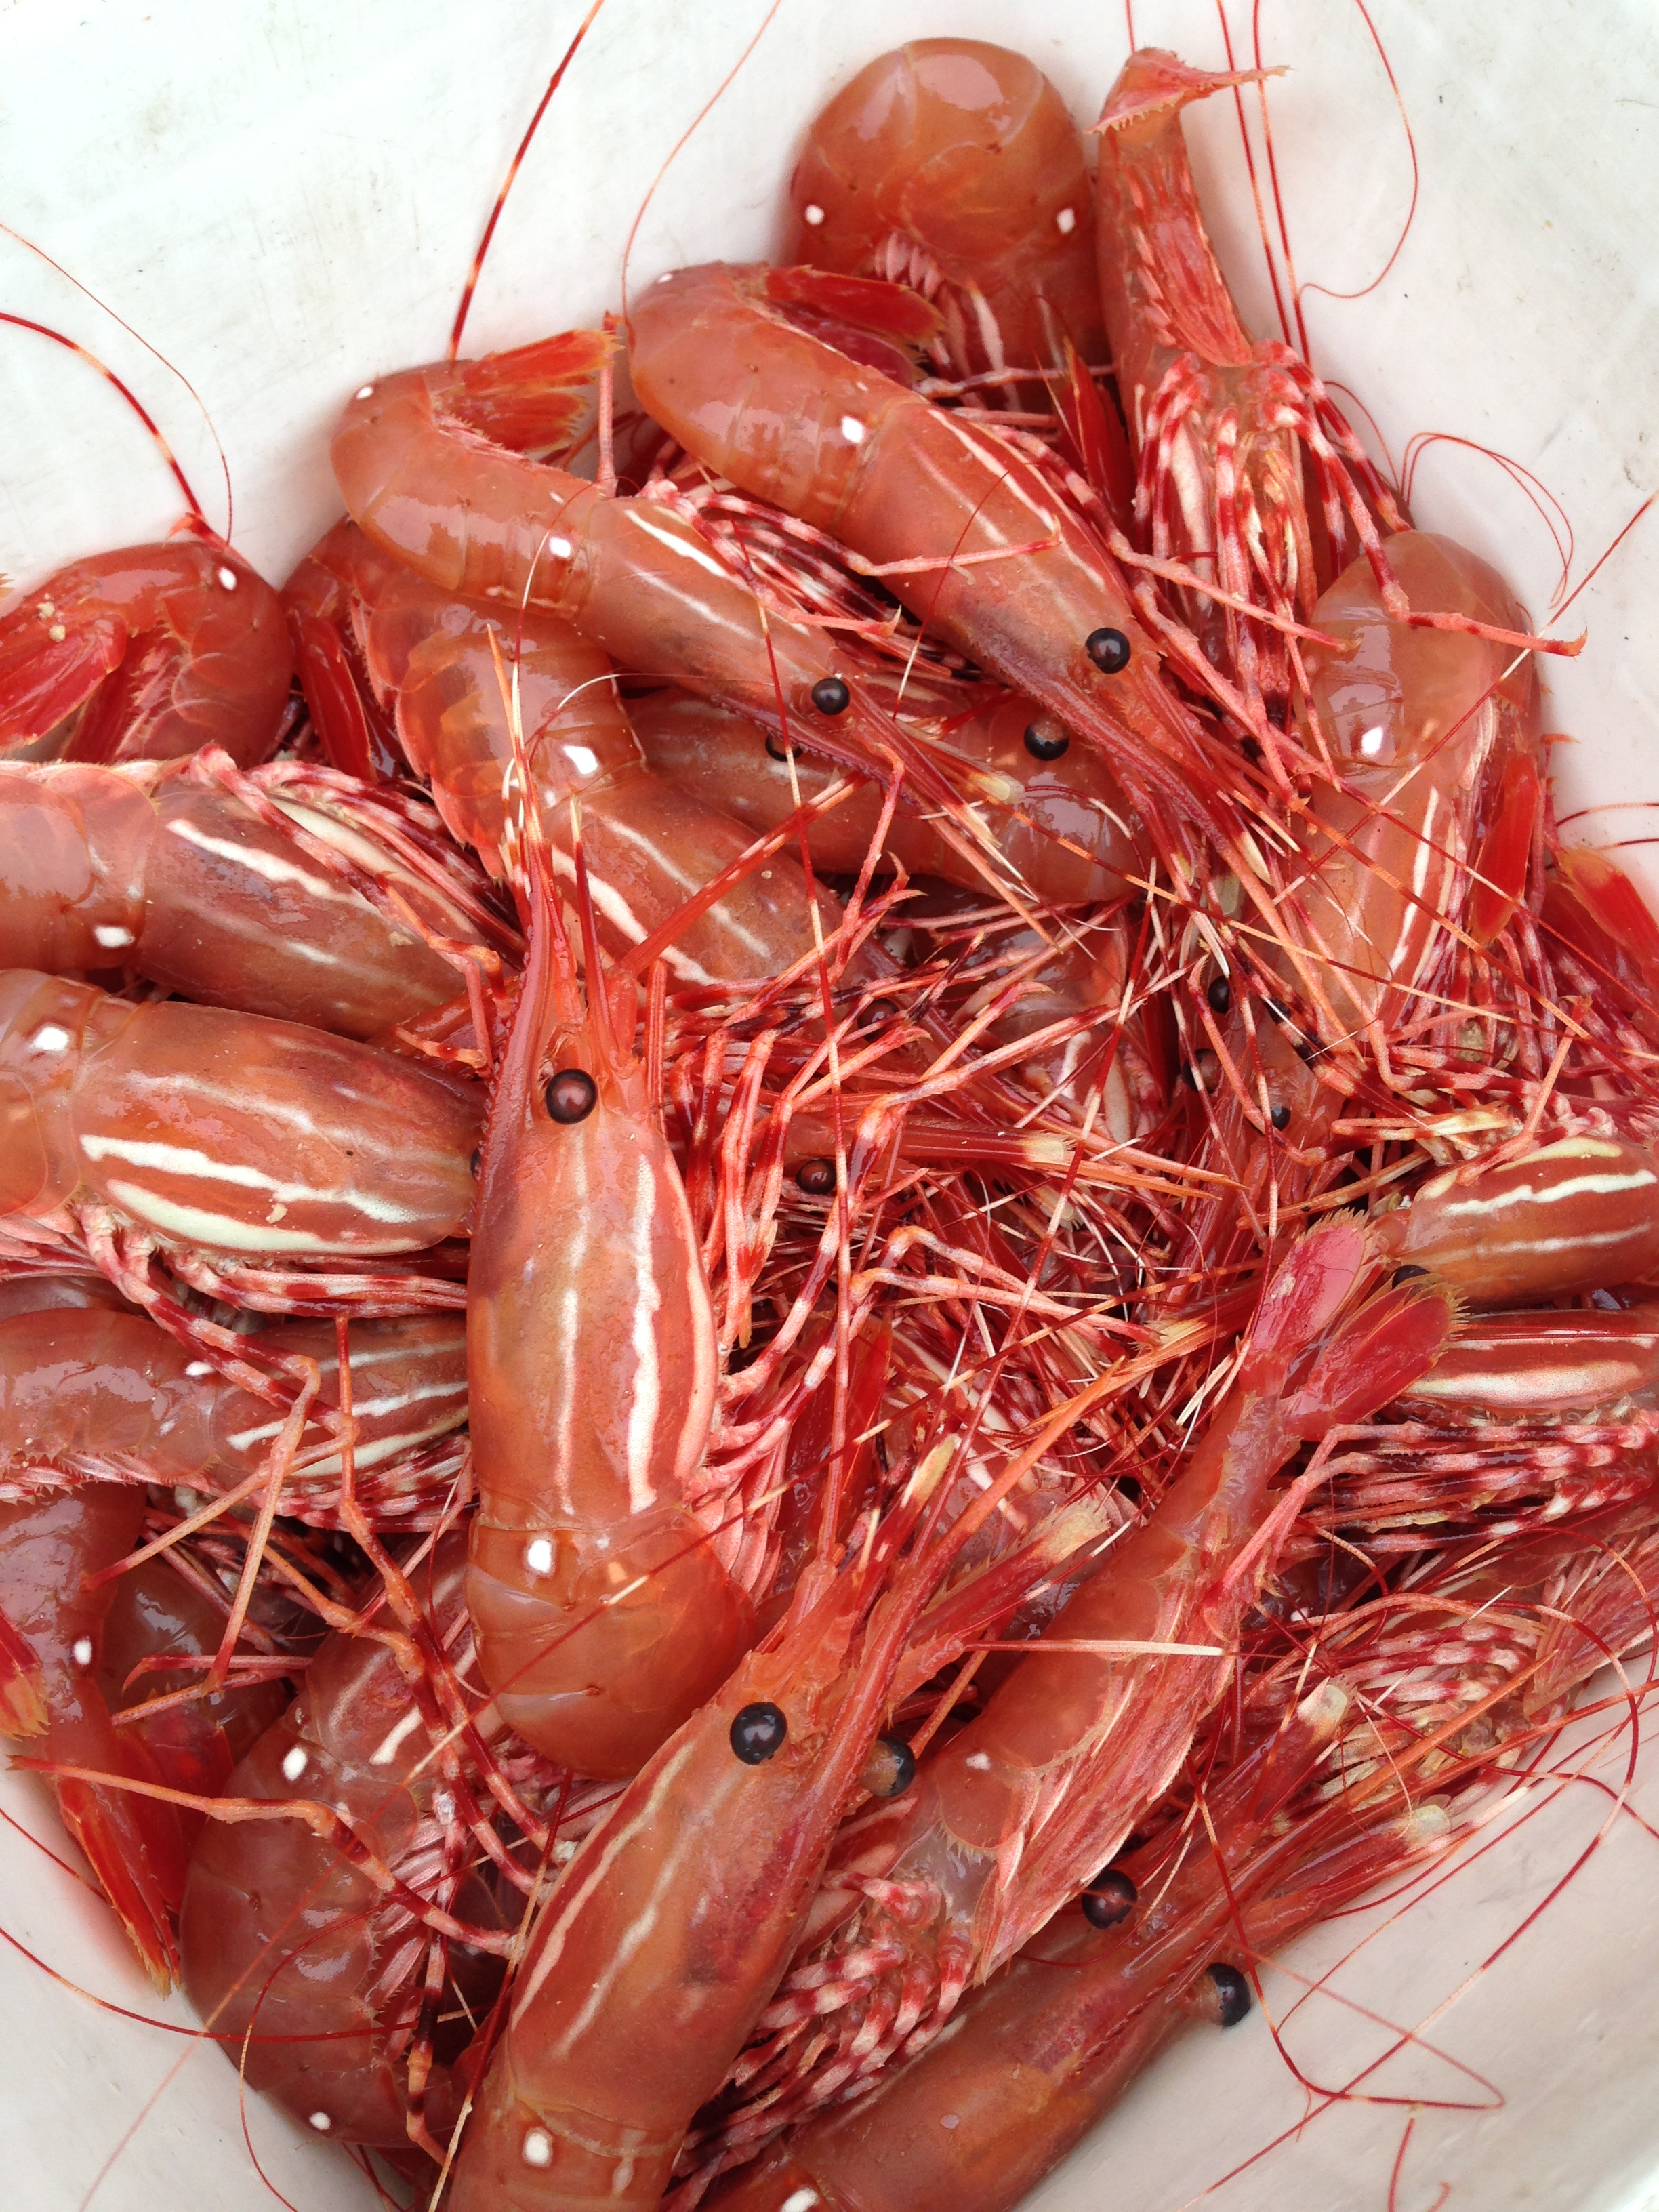 Return to the Hood Canal for Spotted Shrimp